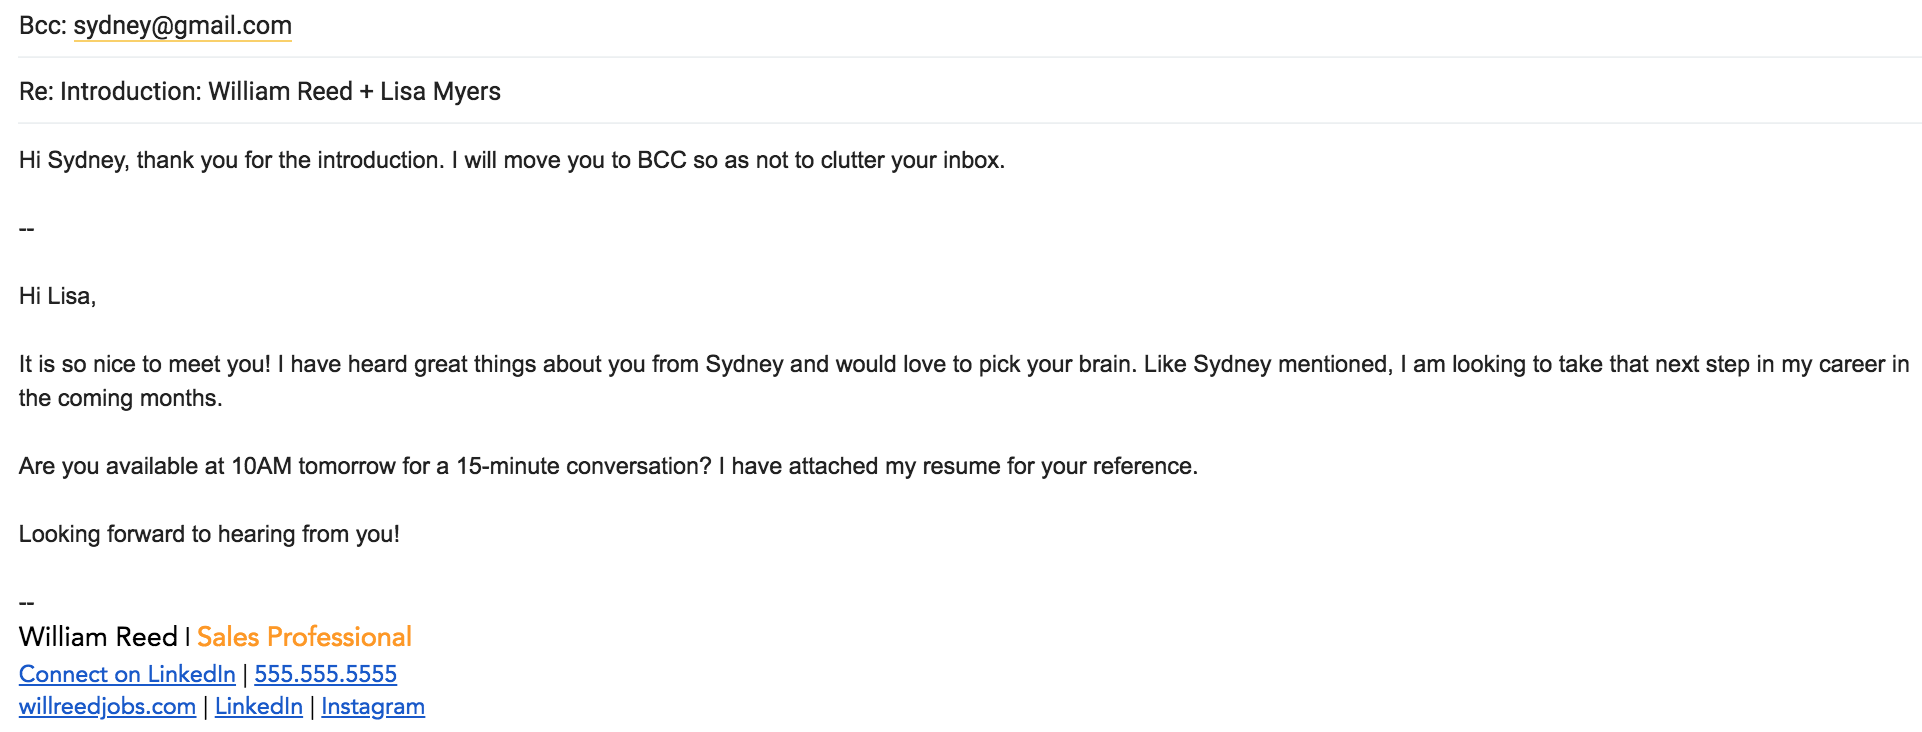 How To Move Someone To Bcc In A Professional Email.png